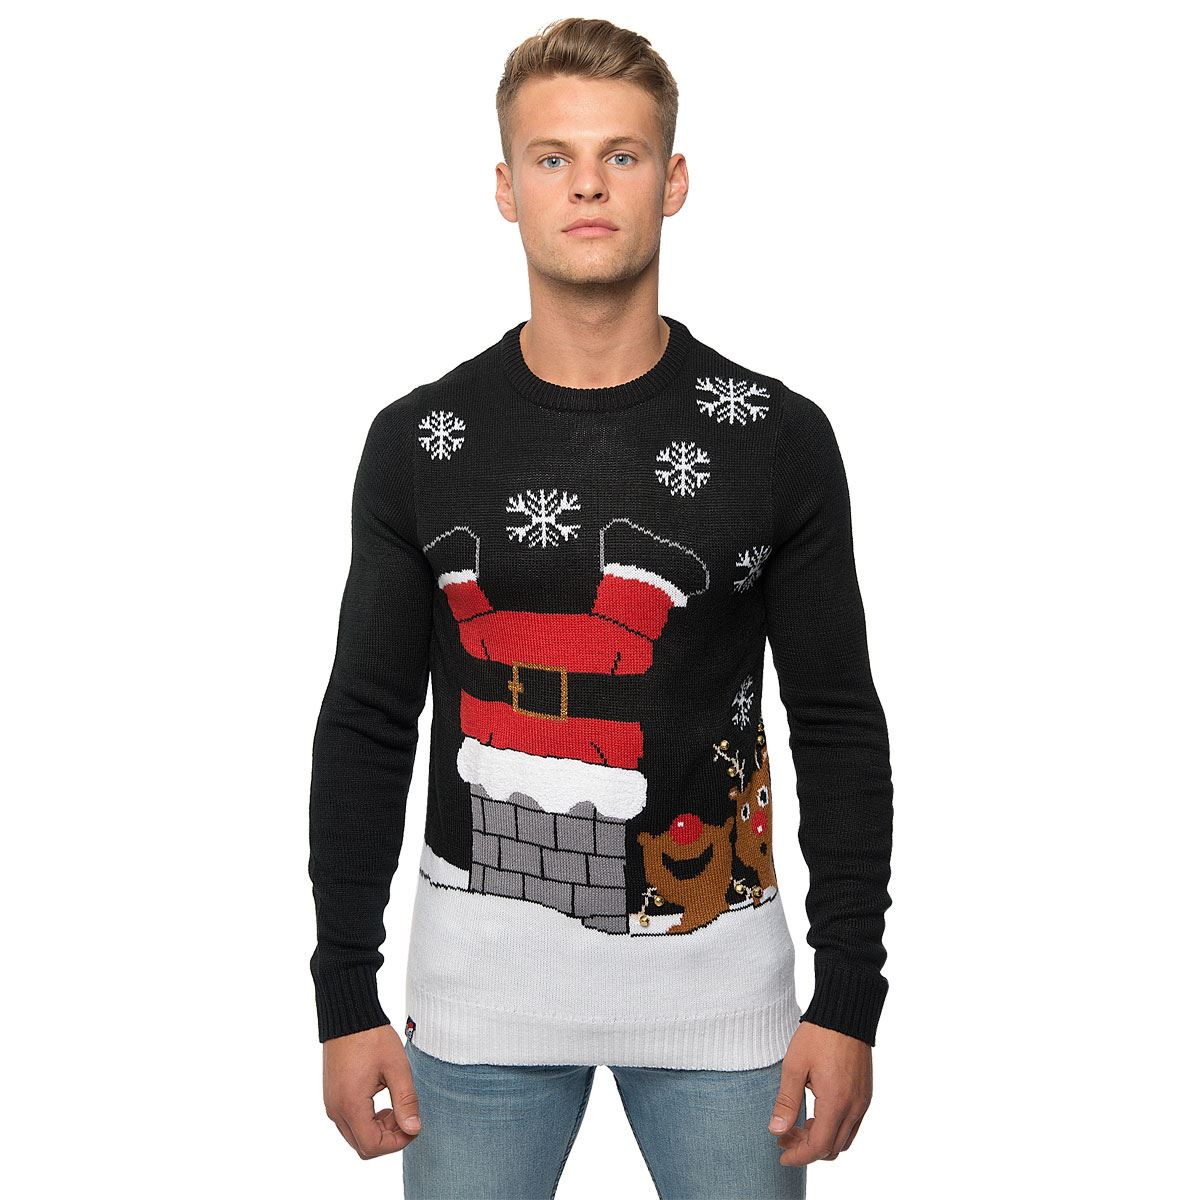 Loyalty-amp-Faith-Mens-Novelty-Christmas-Jumpers-Knitted-Top-3D-Xmas-Gift-Sweater